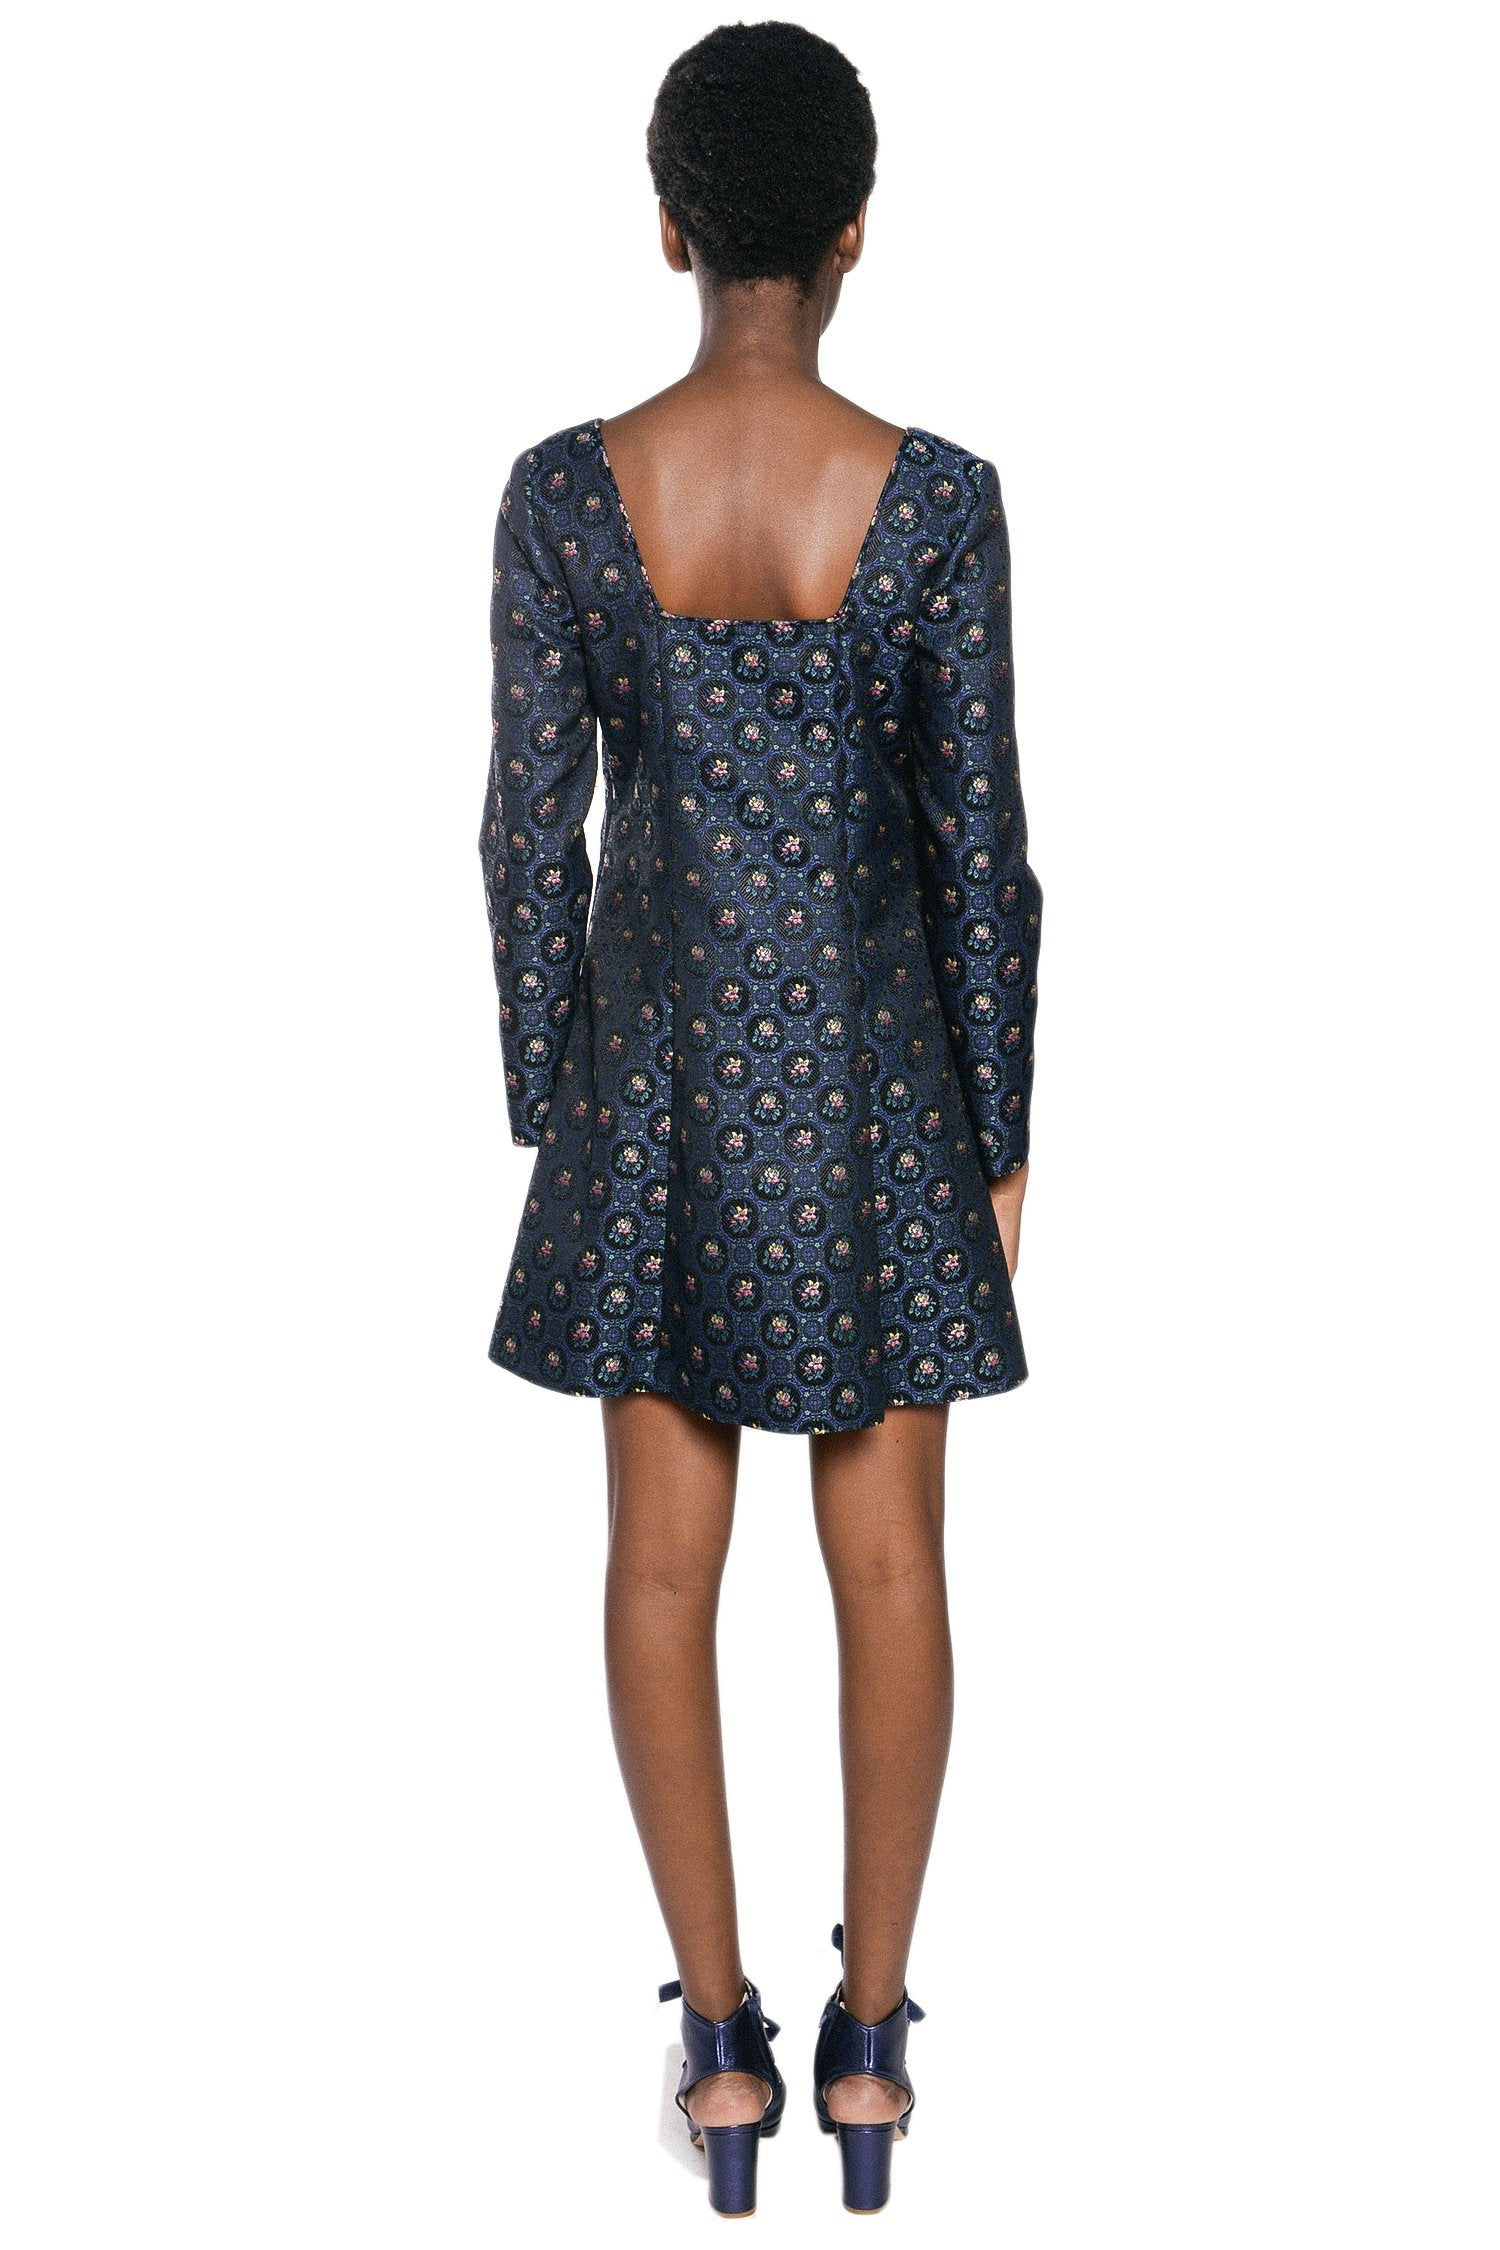 Pressed Petals Jacquard Dress